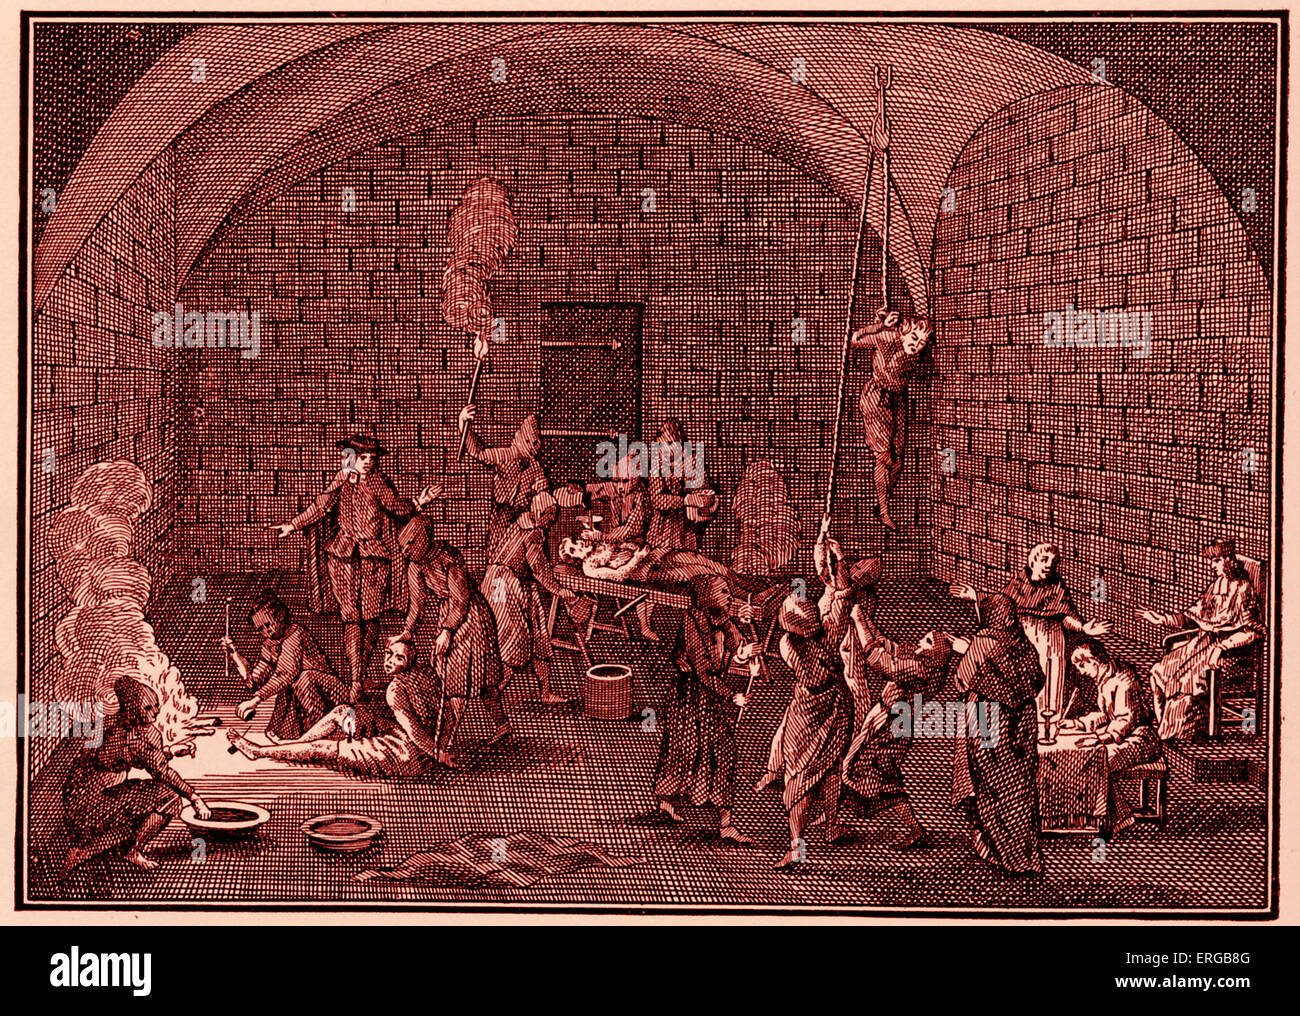 Spanish Inquistion tortures prisoners (after Picart) (Inquisition directed against Moslems and Jews) - Stock Image